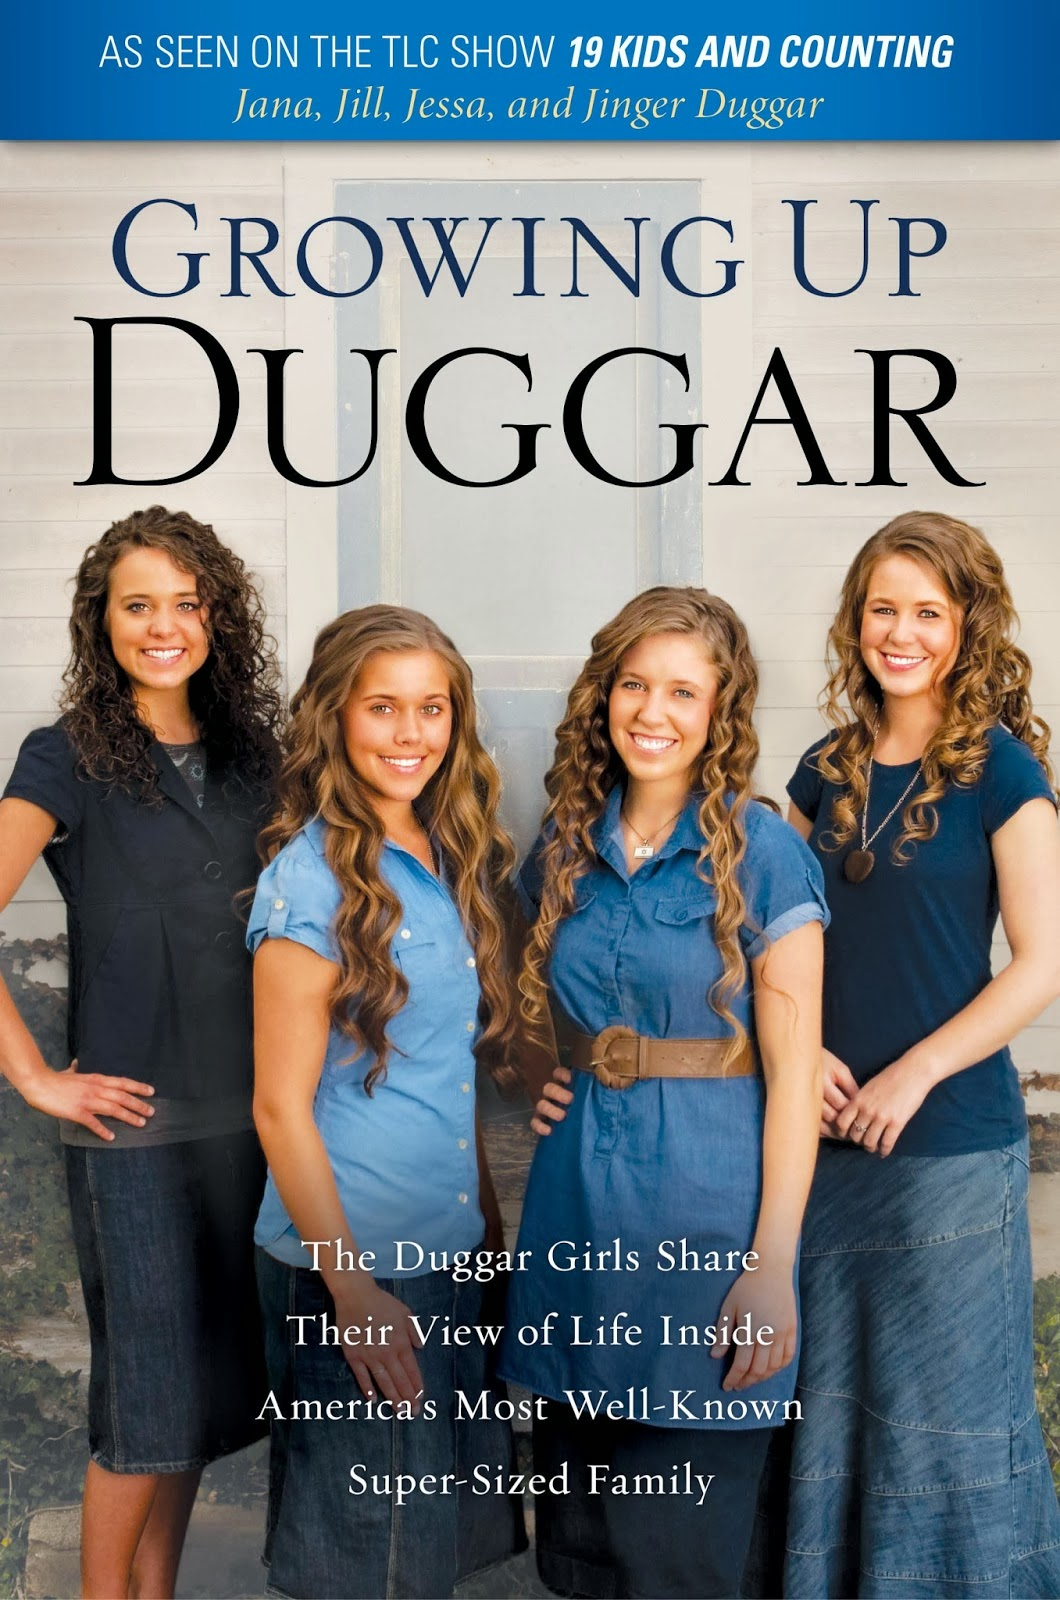 "http://www.amazon.com/Growing-Up-Duggar-About-Relationships-ebook/dp/B00BSB2BG6/?_encoding=UTF8&camp=1789&creative=9325&keywords=growing%20up%20duggar&linkCode=ur2&qid=1393878015&sr=8-1&tag=awiwobuheho-20""></a><img src=""http://ir-na.amazon-adsystem.com/e/ir?t=awiwobuheho-20&l=ur2&o=1"" width=""1"" height=""1"" border=""0"" alt="""" style=""border:none !important; margin:0px !important;"" /"